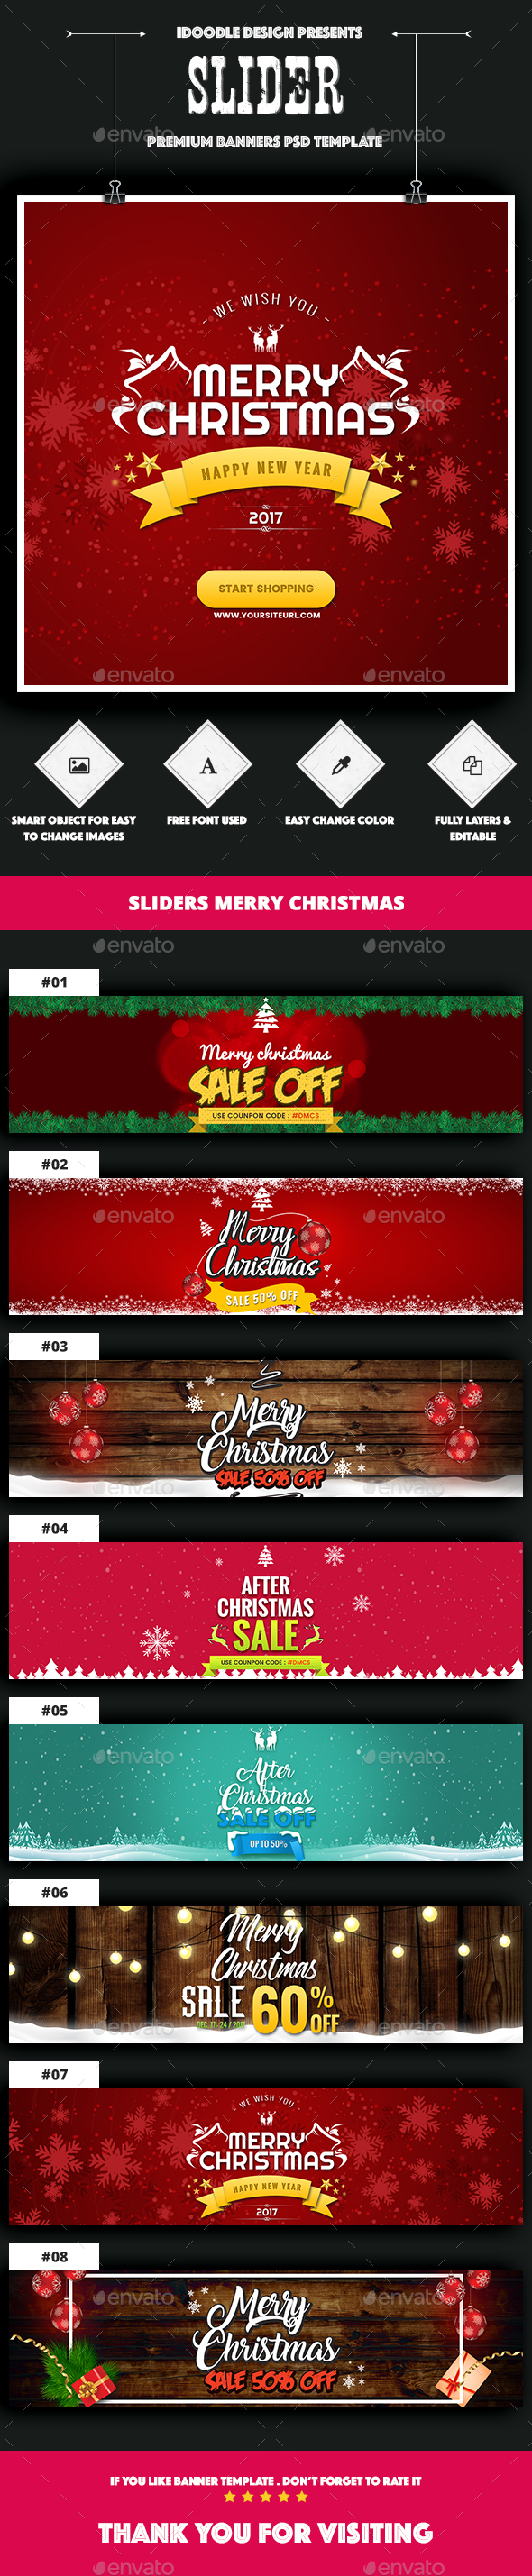 Sliders Header Christmas - 08 PSD - Sliders & Features Web Elements